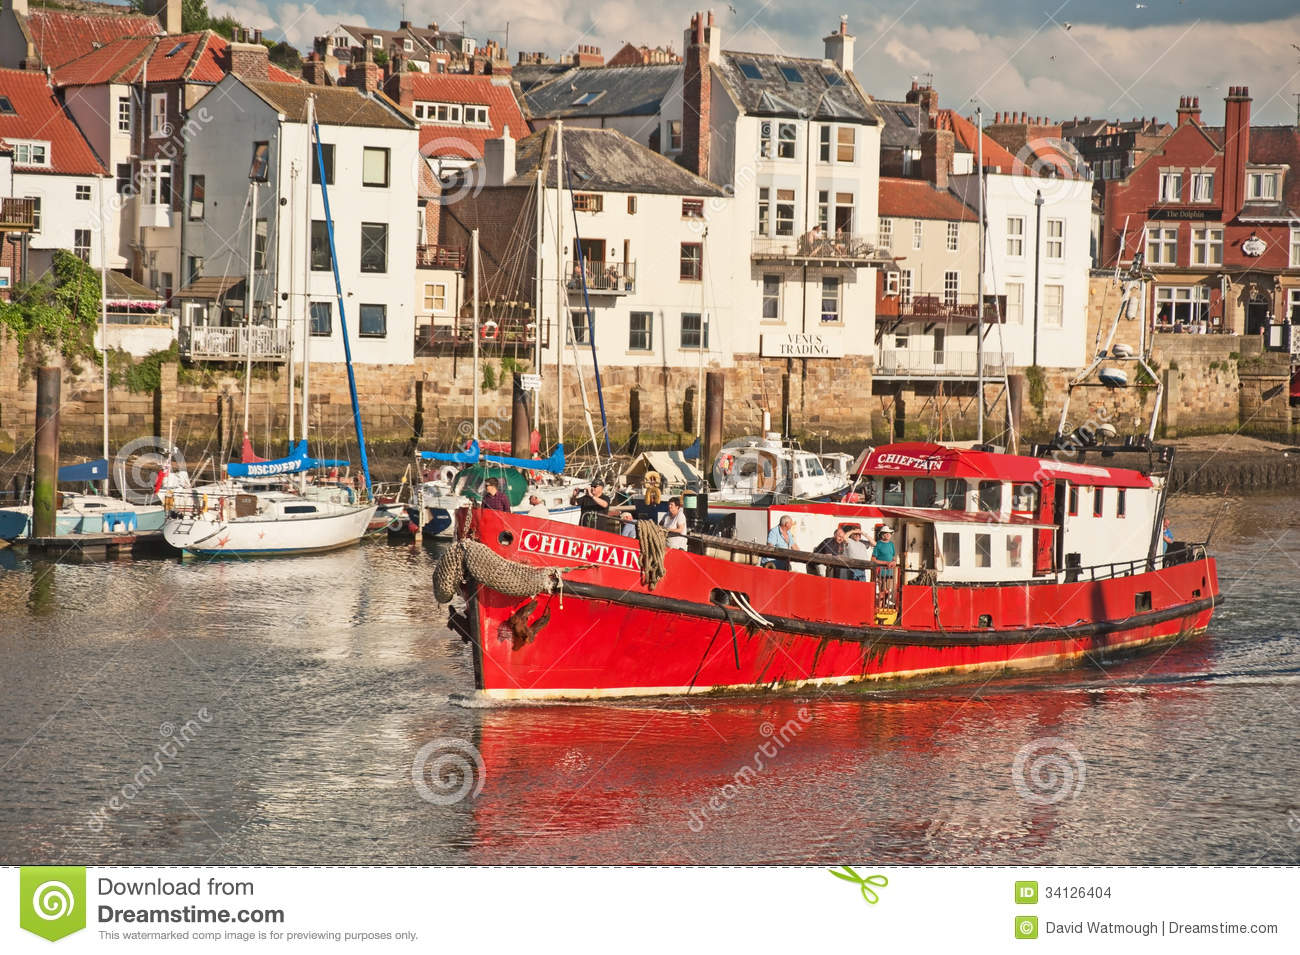 Chieftain Fishing Boat Editorial Stock Image Image Of